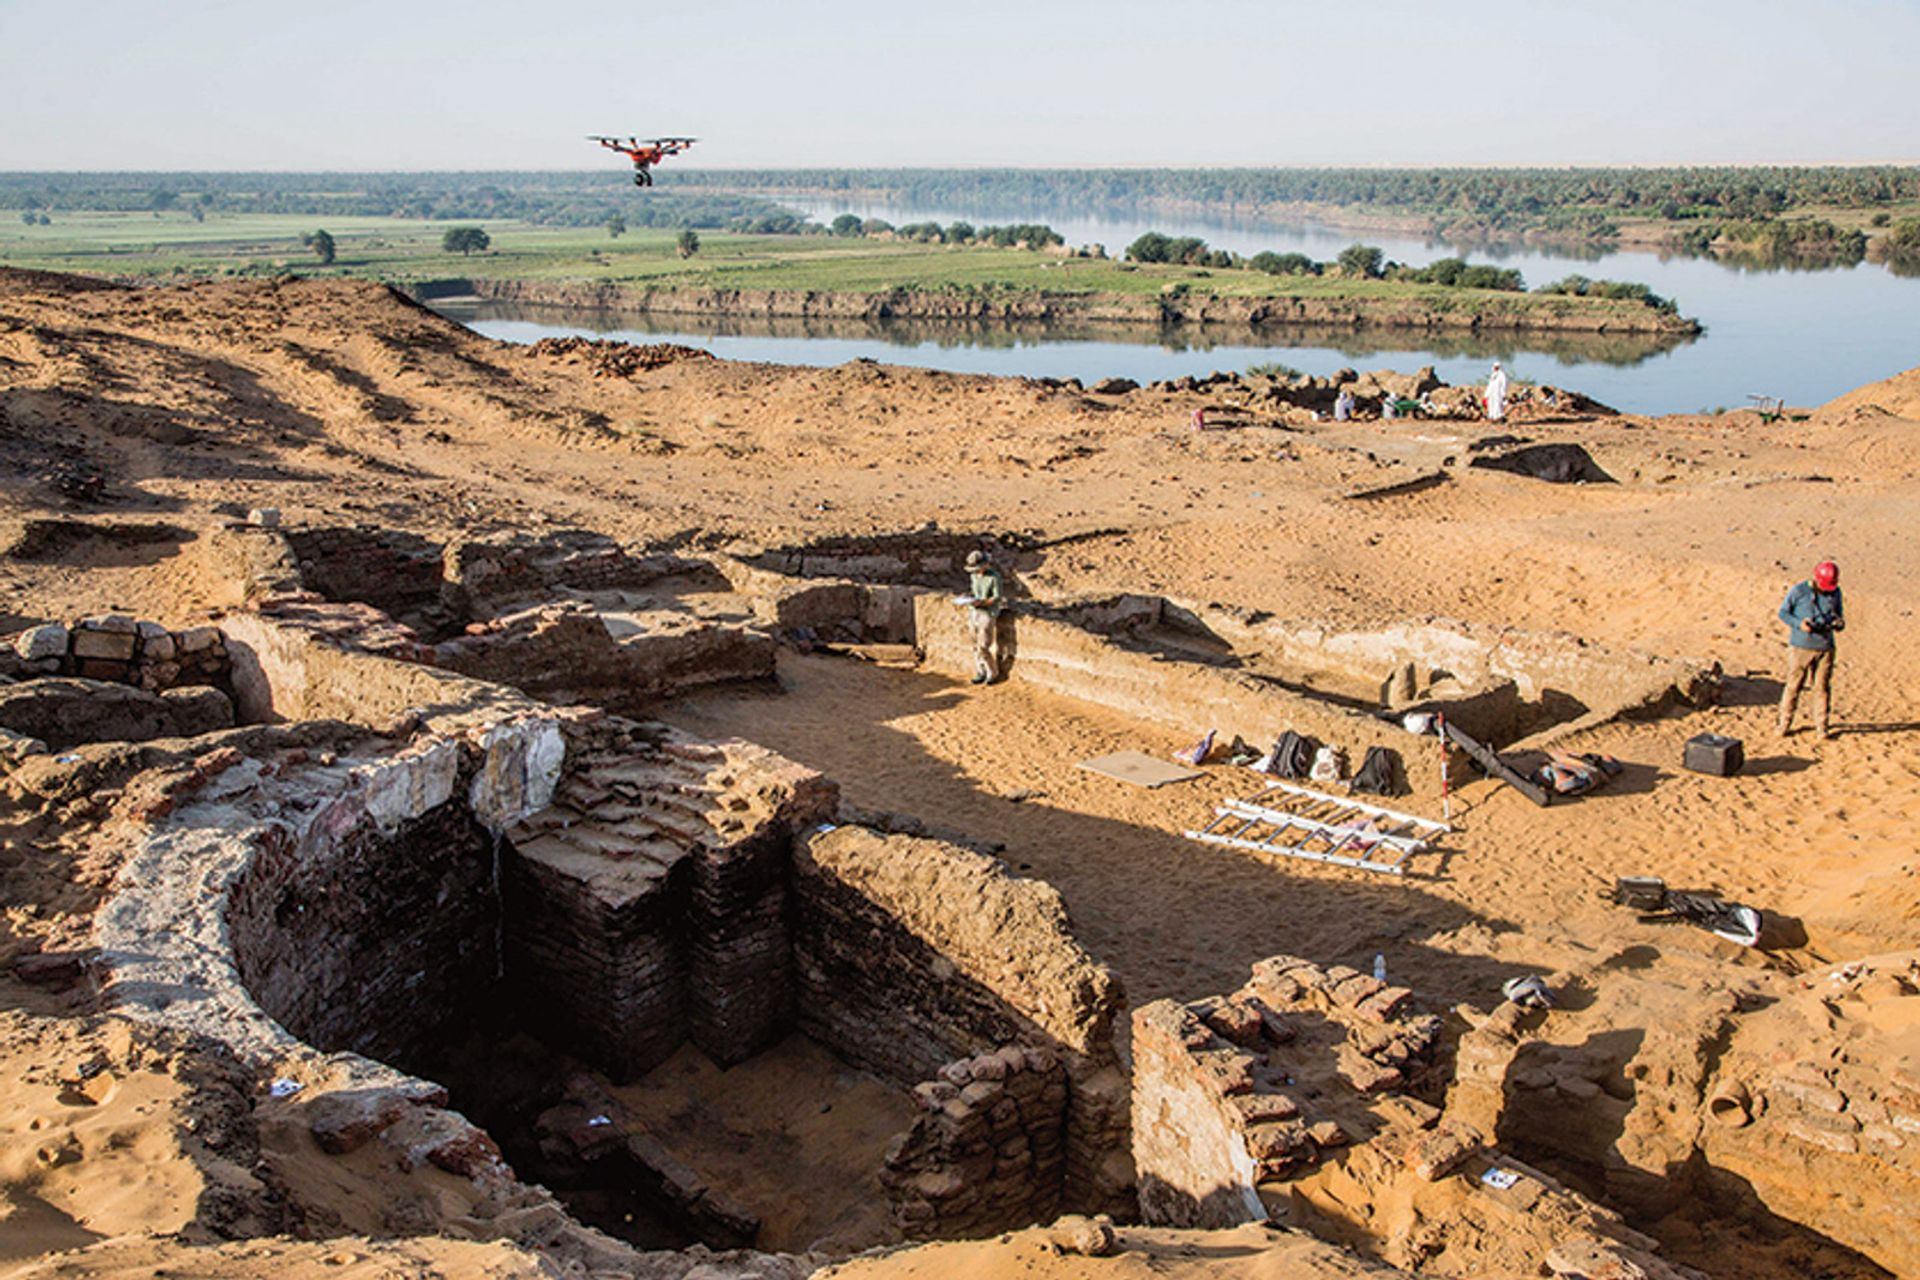 Excavations in Old Dongola revealed two walls of a 6m-wide apse as well as the dome of a large tomb Polish Centre of Mediterranean Archaeology, University of Warsaw/Mateusz Rekłajtis